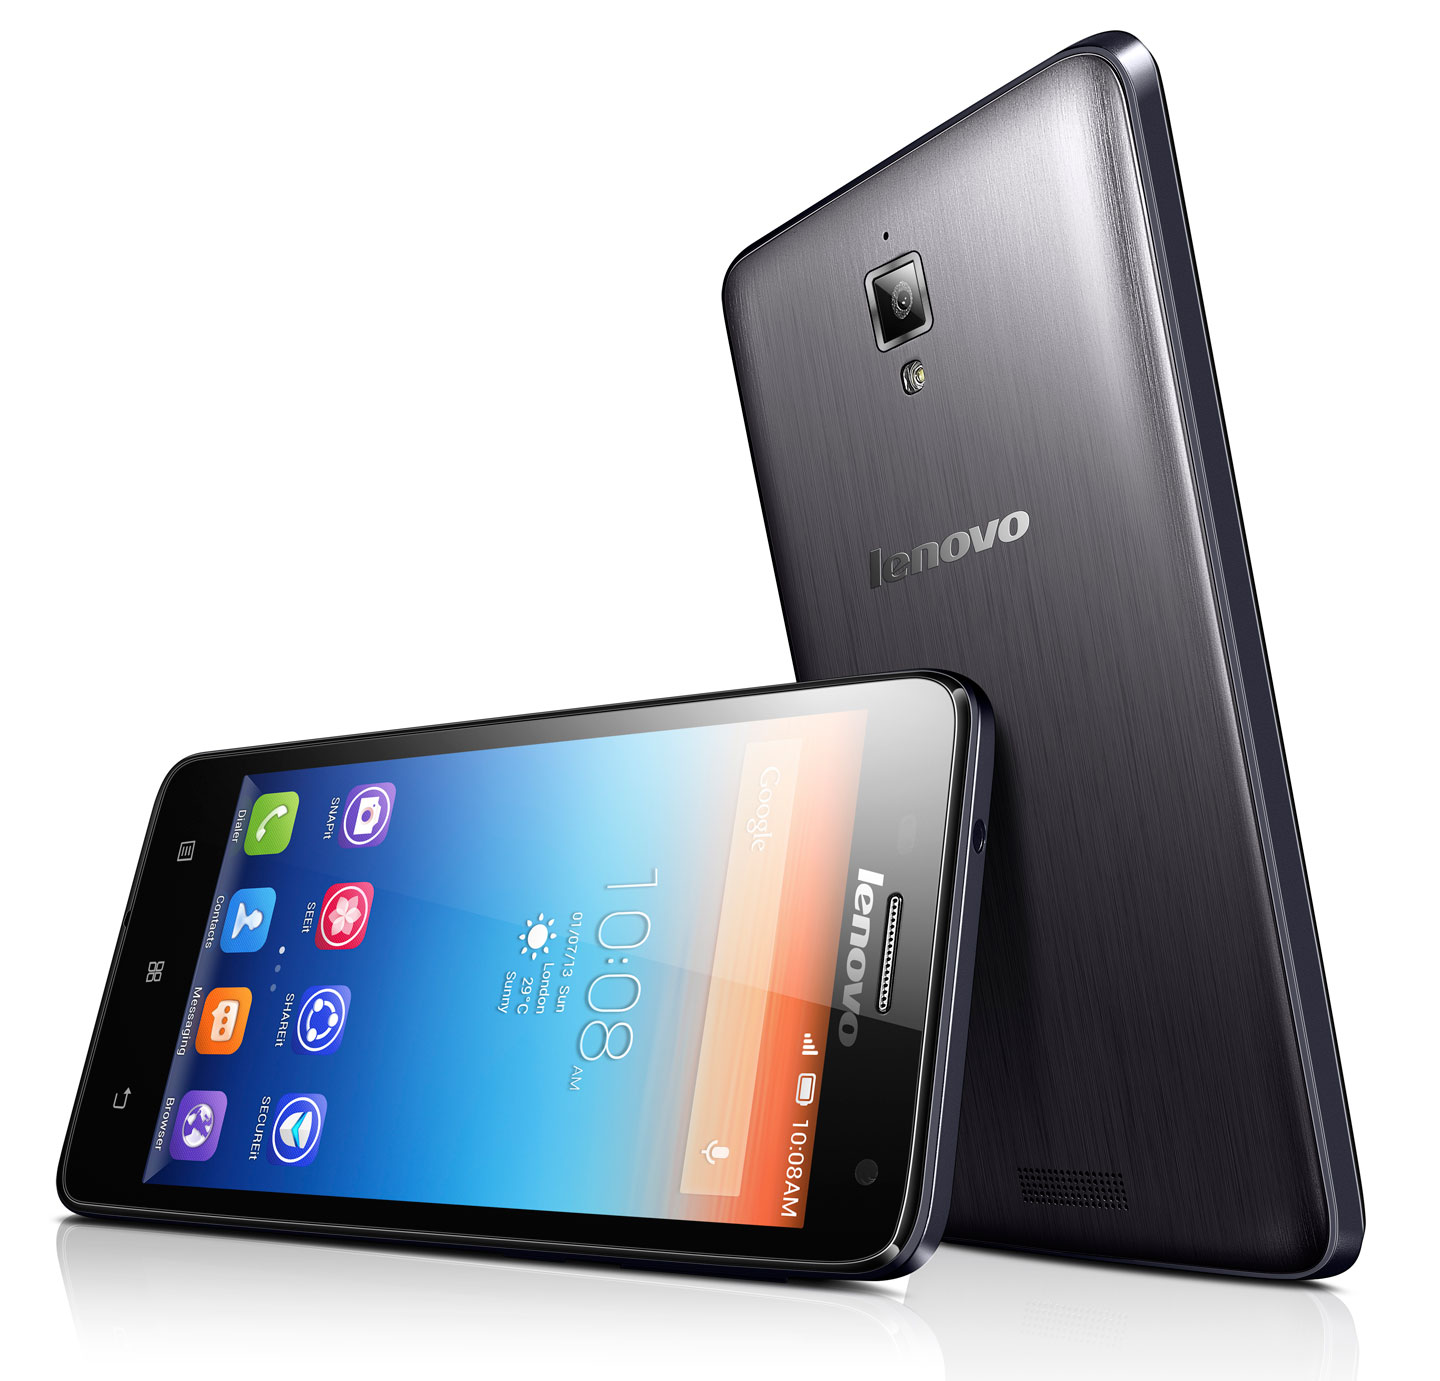 Lenovo Unveils Its S860, S850, and S660 Android Smartphones